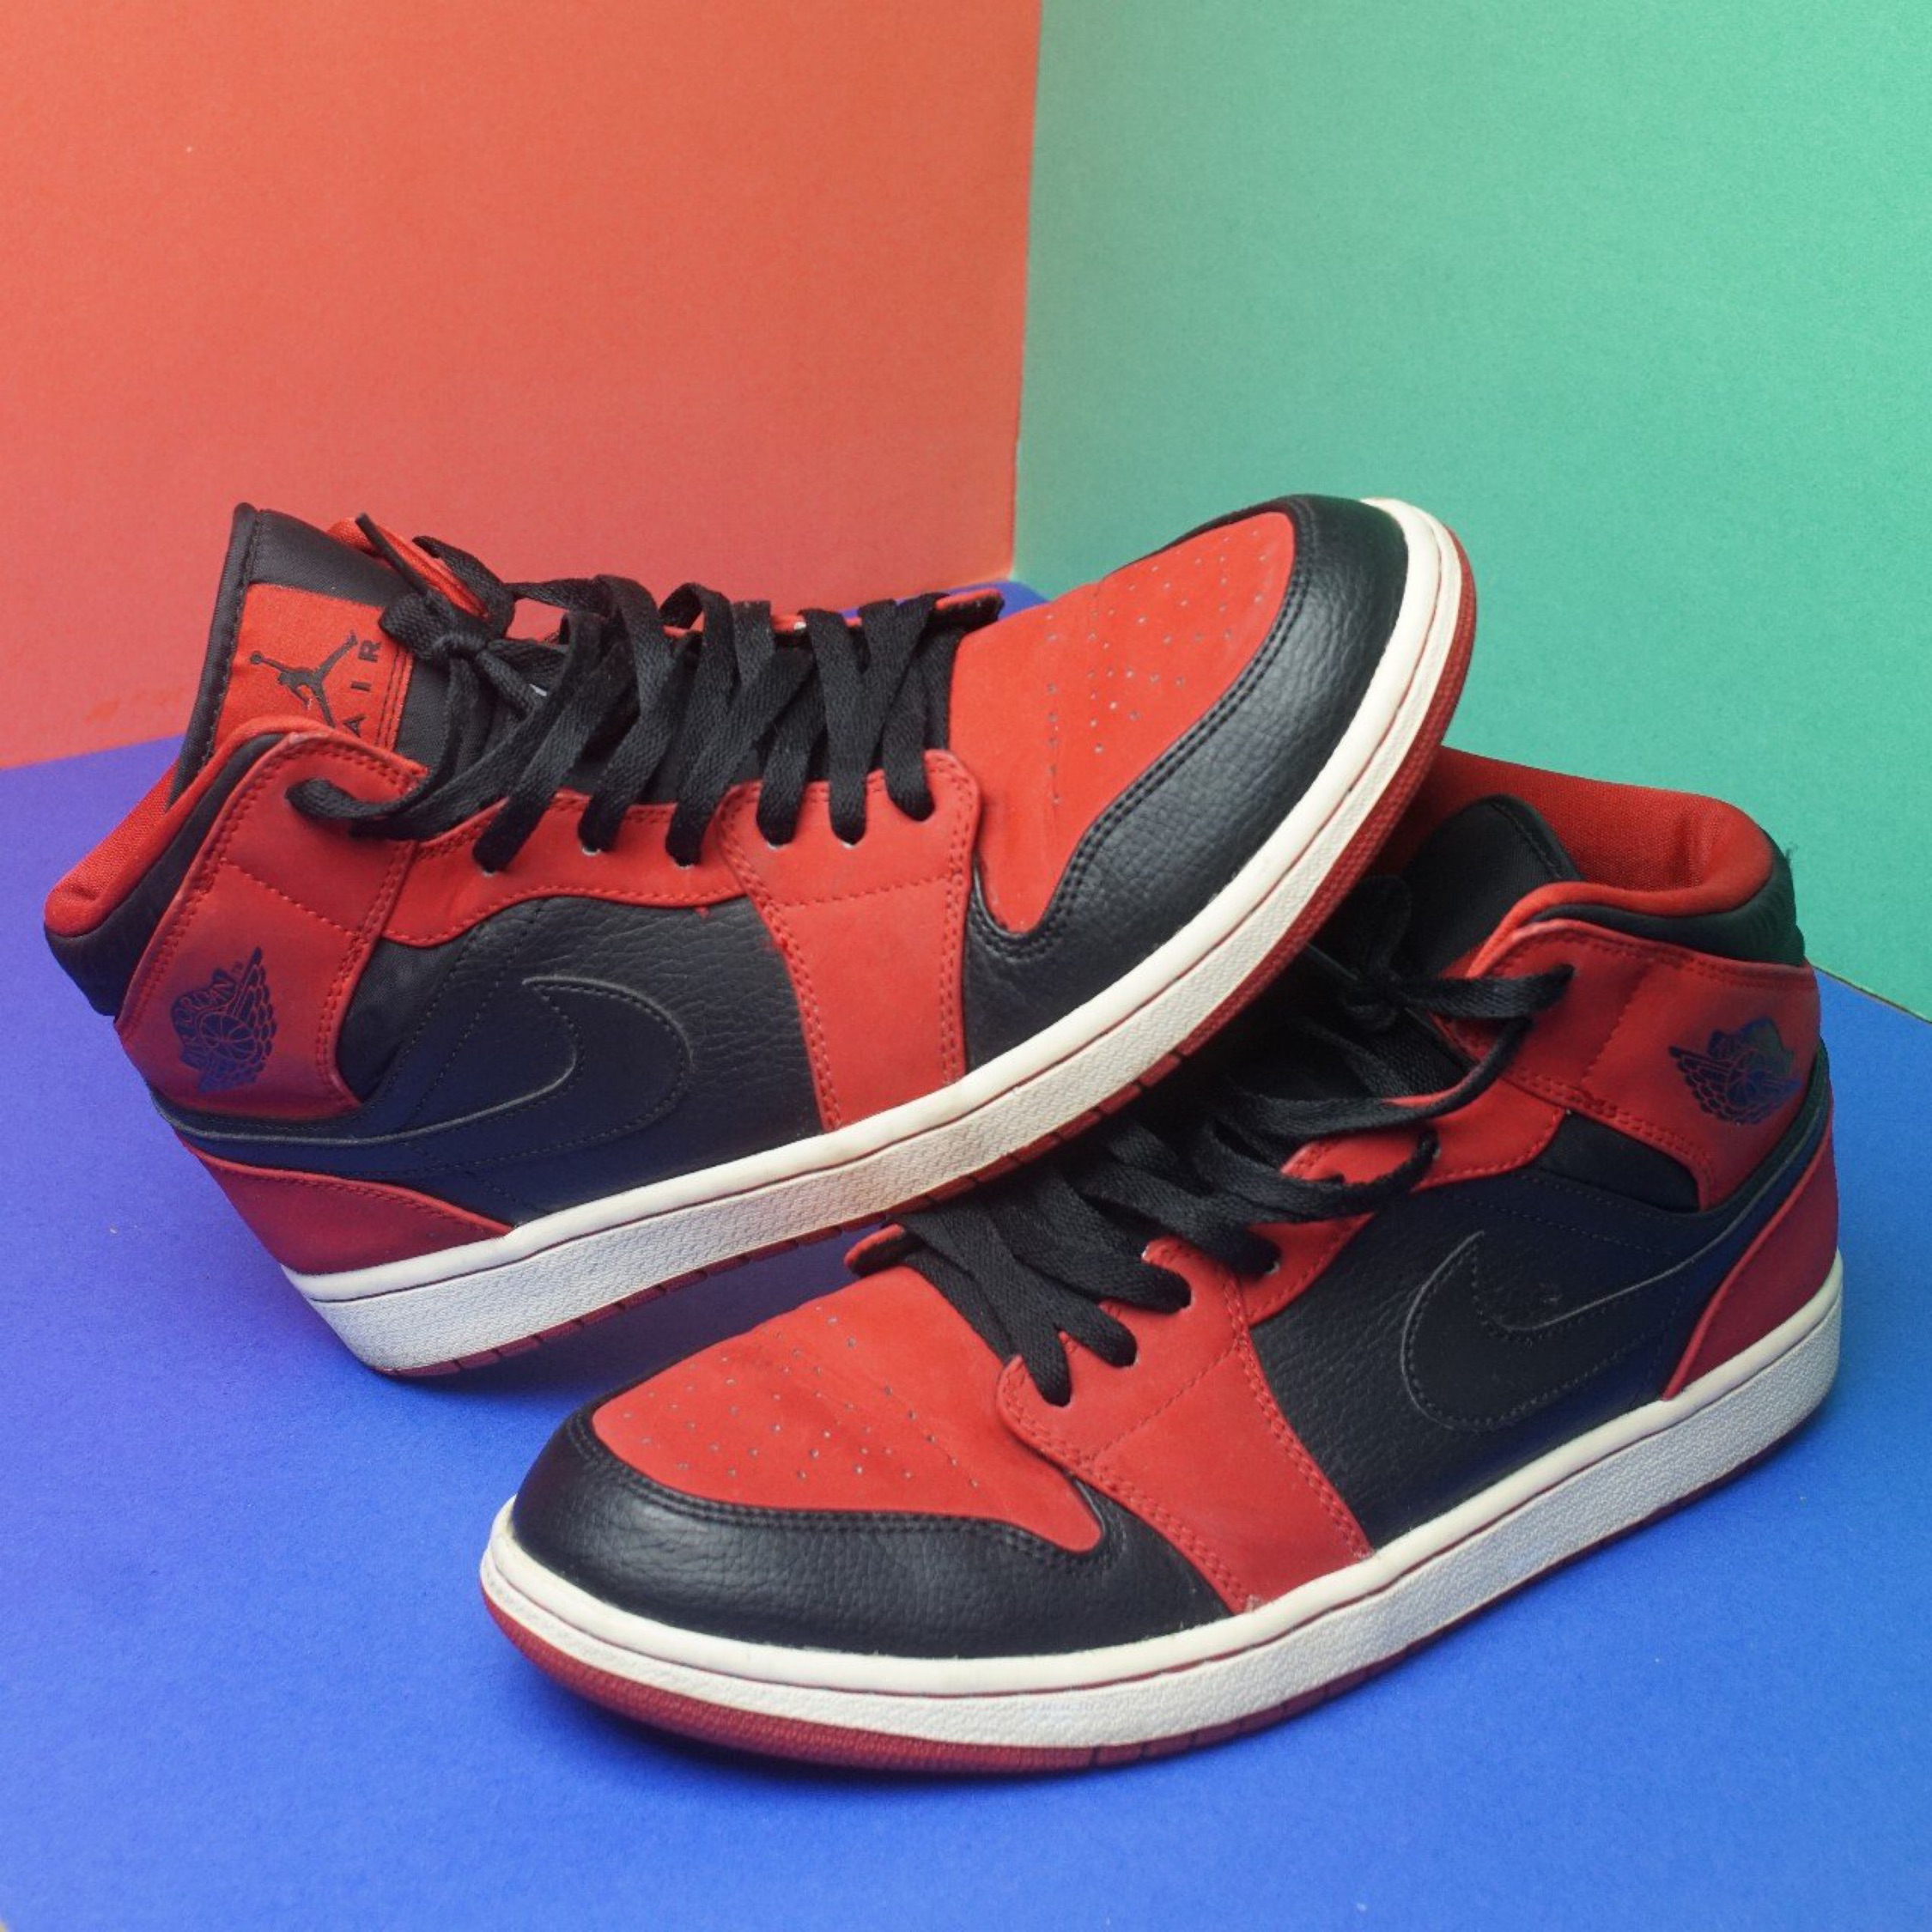 reputable site d8904 44cdd Nike Air Jordan 1 Bred Mid Red Black